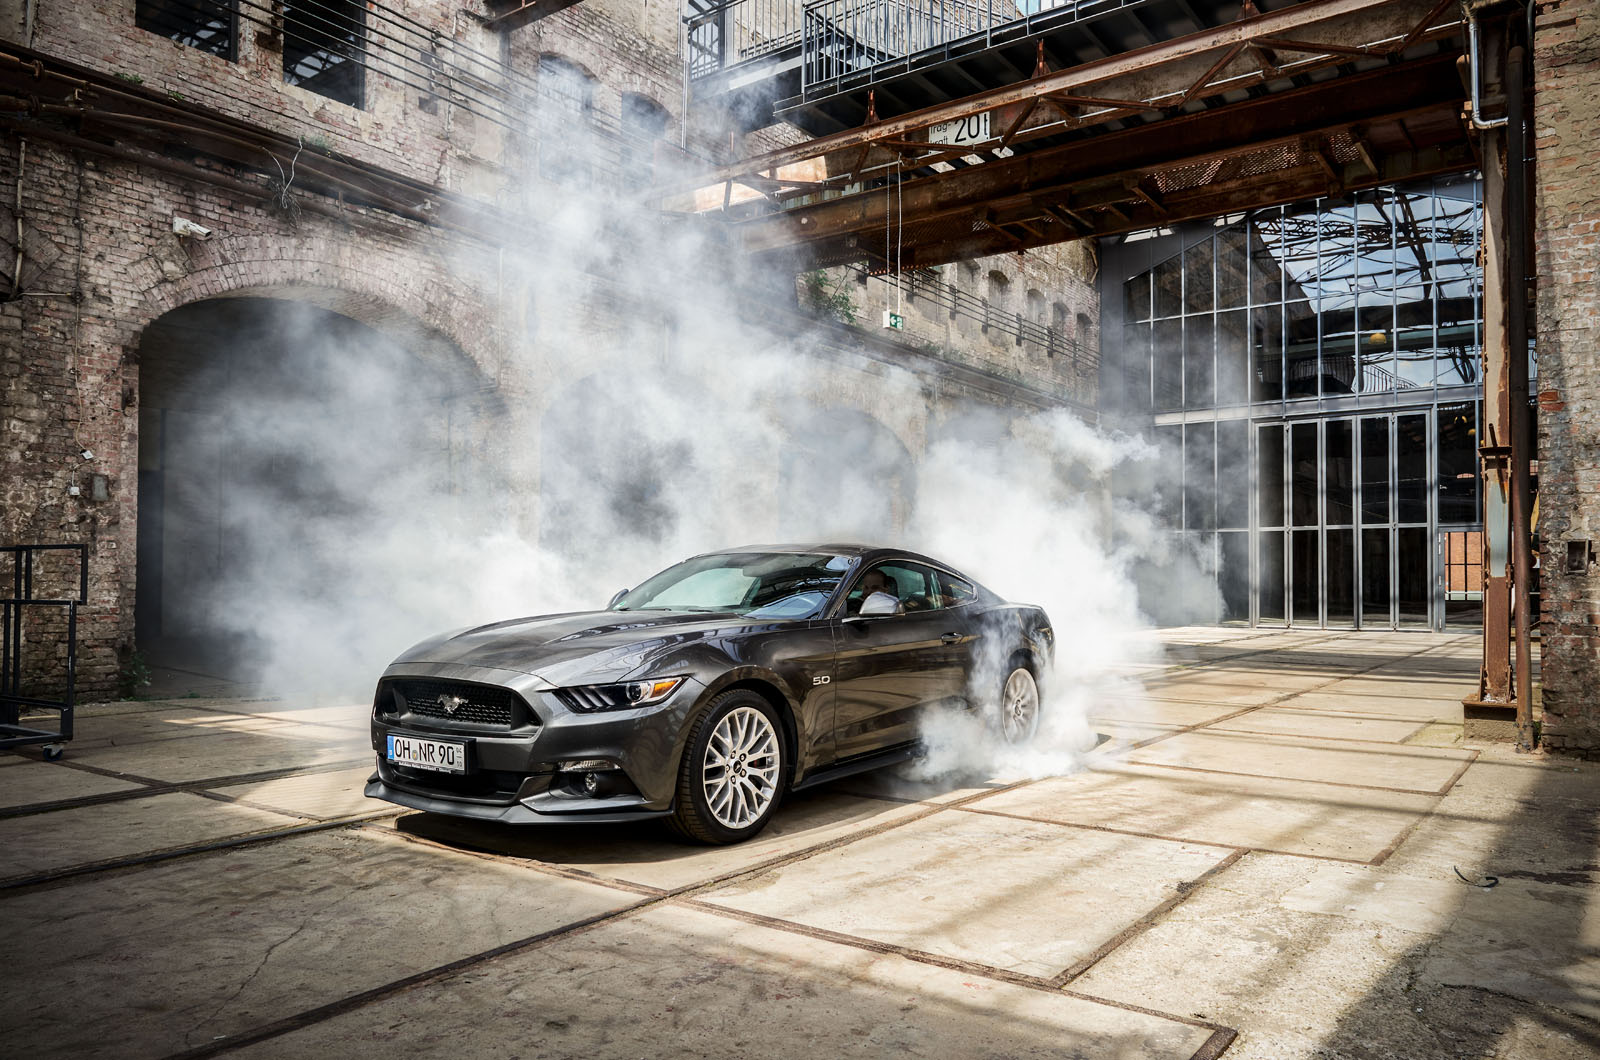 Ford Mustang GT Industrie Halle